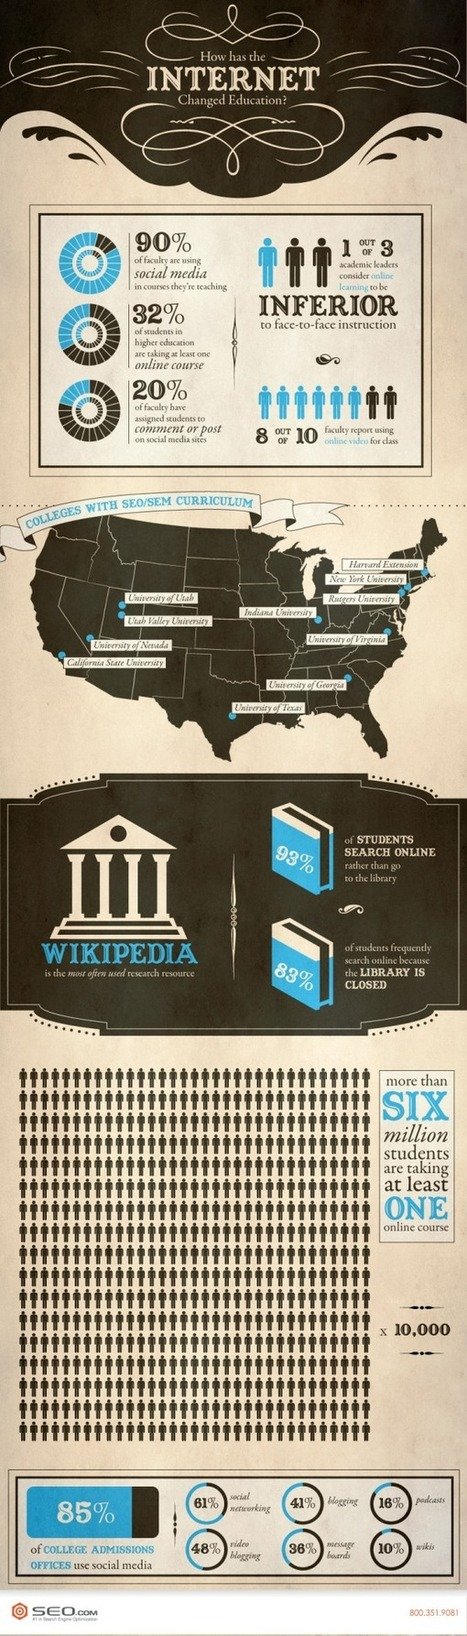 Cool Infographics - Blog - How Has Internet Changed Education? | Emerging Library Technologies | Scoop.it